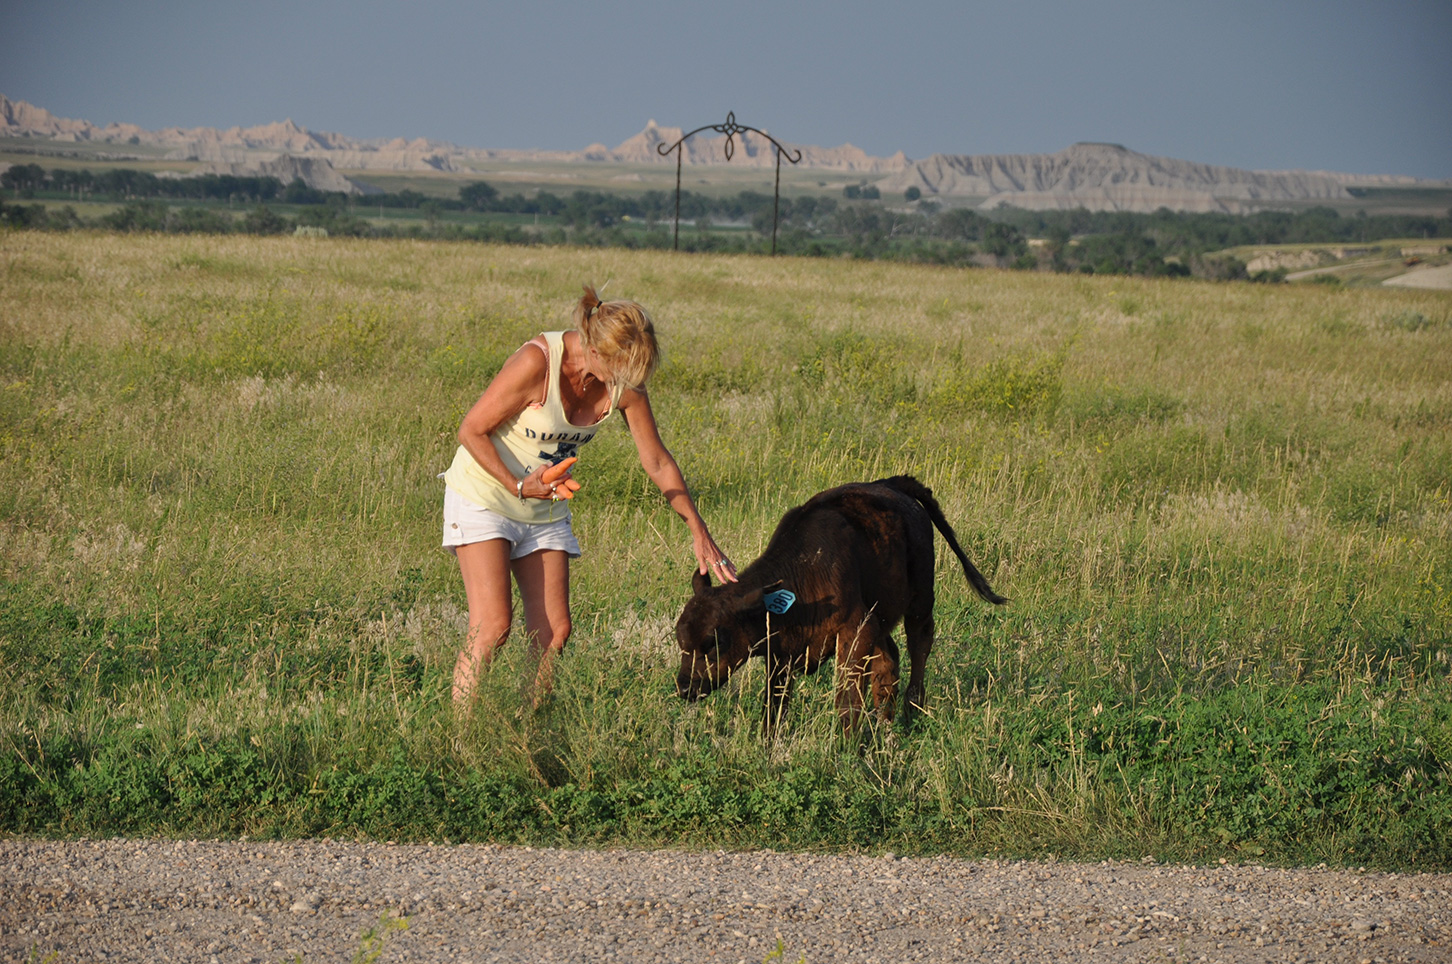 Woman petting a small calf in the grass